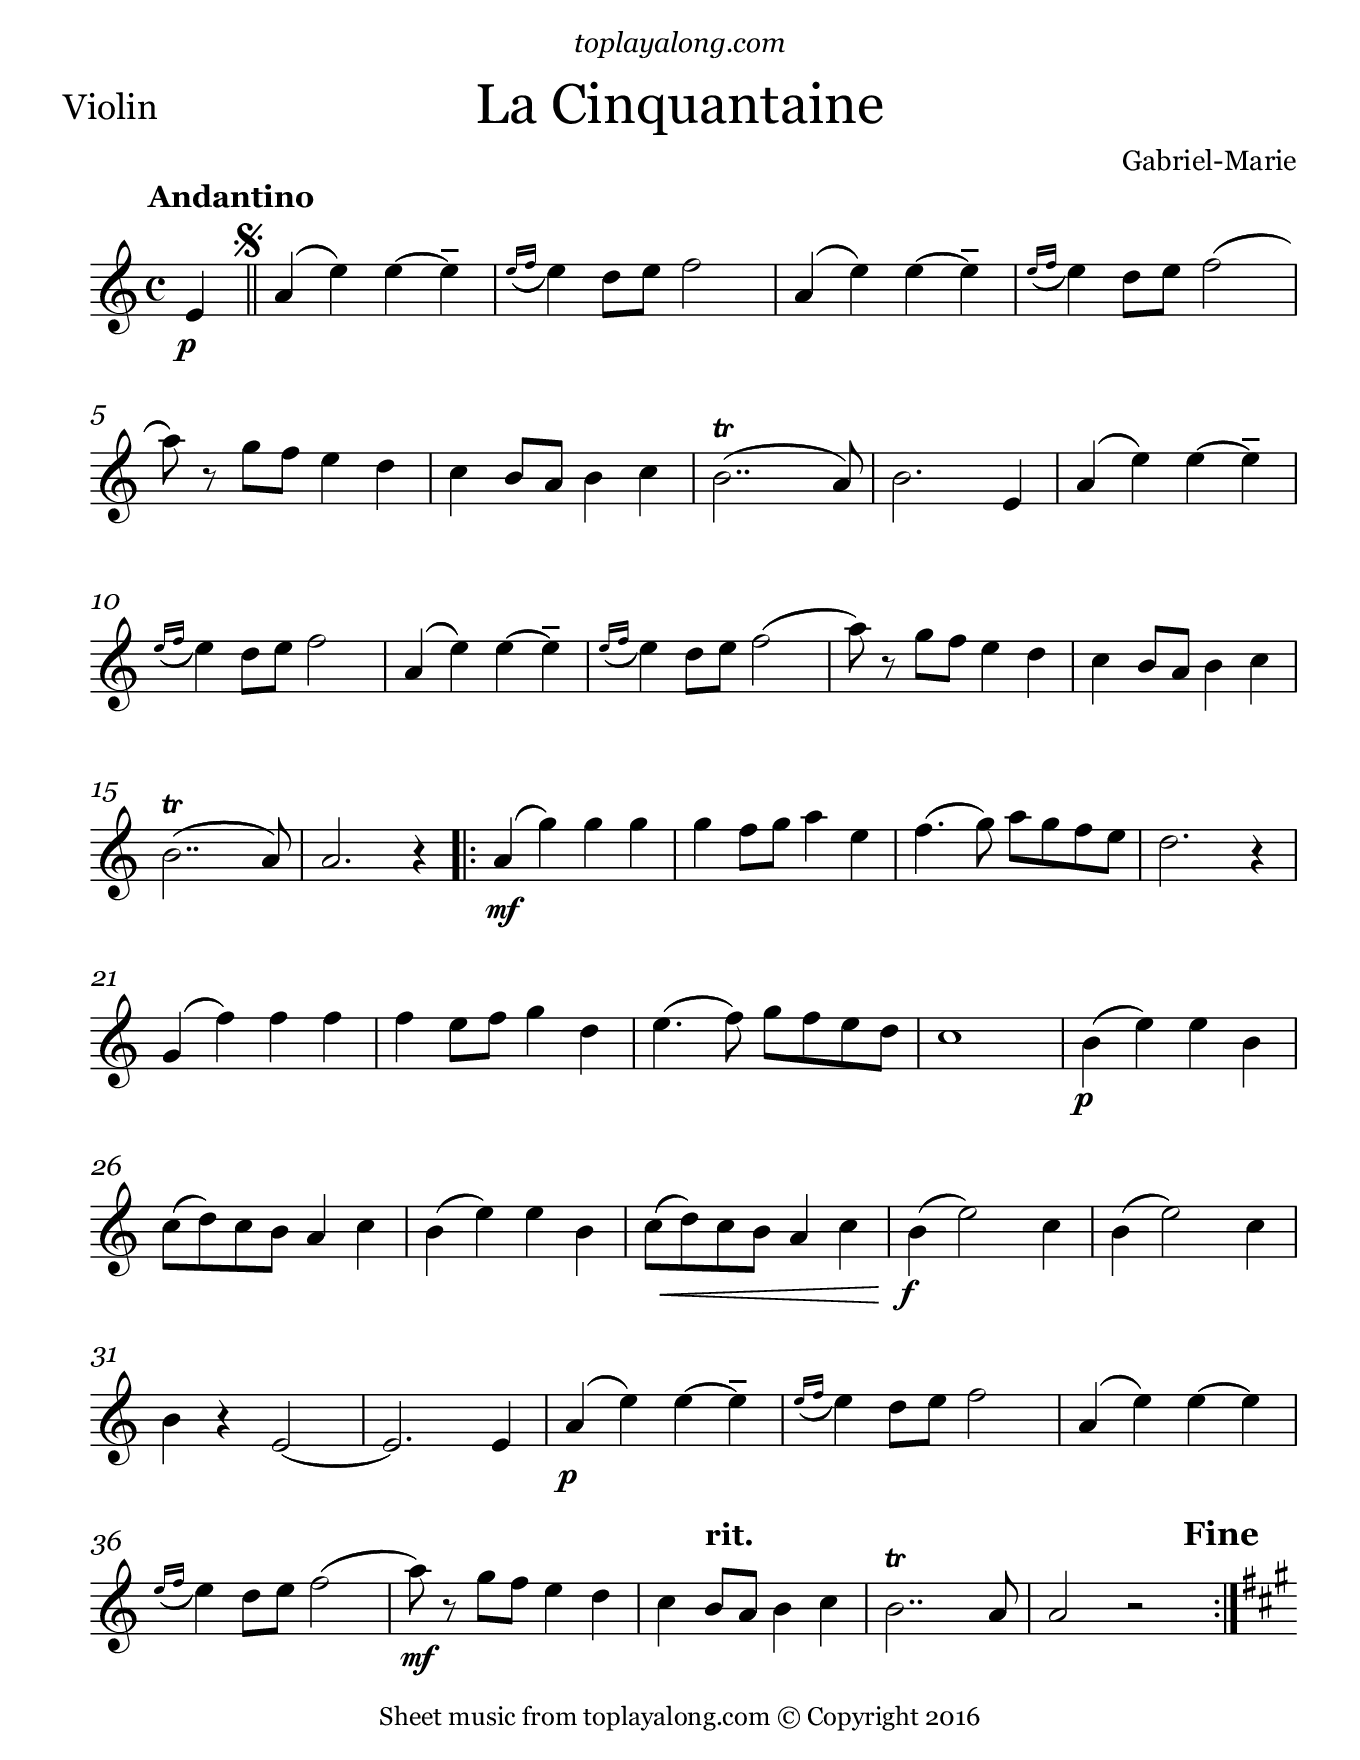 La Cinquantaine by Gabriel-Marie. Sheet music for Violin, page 1.